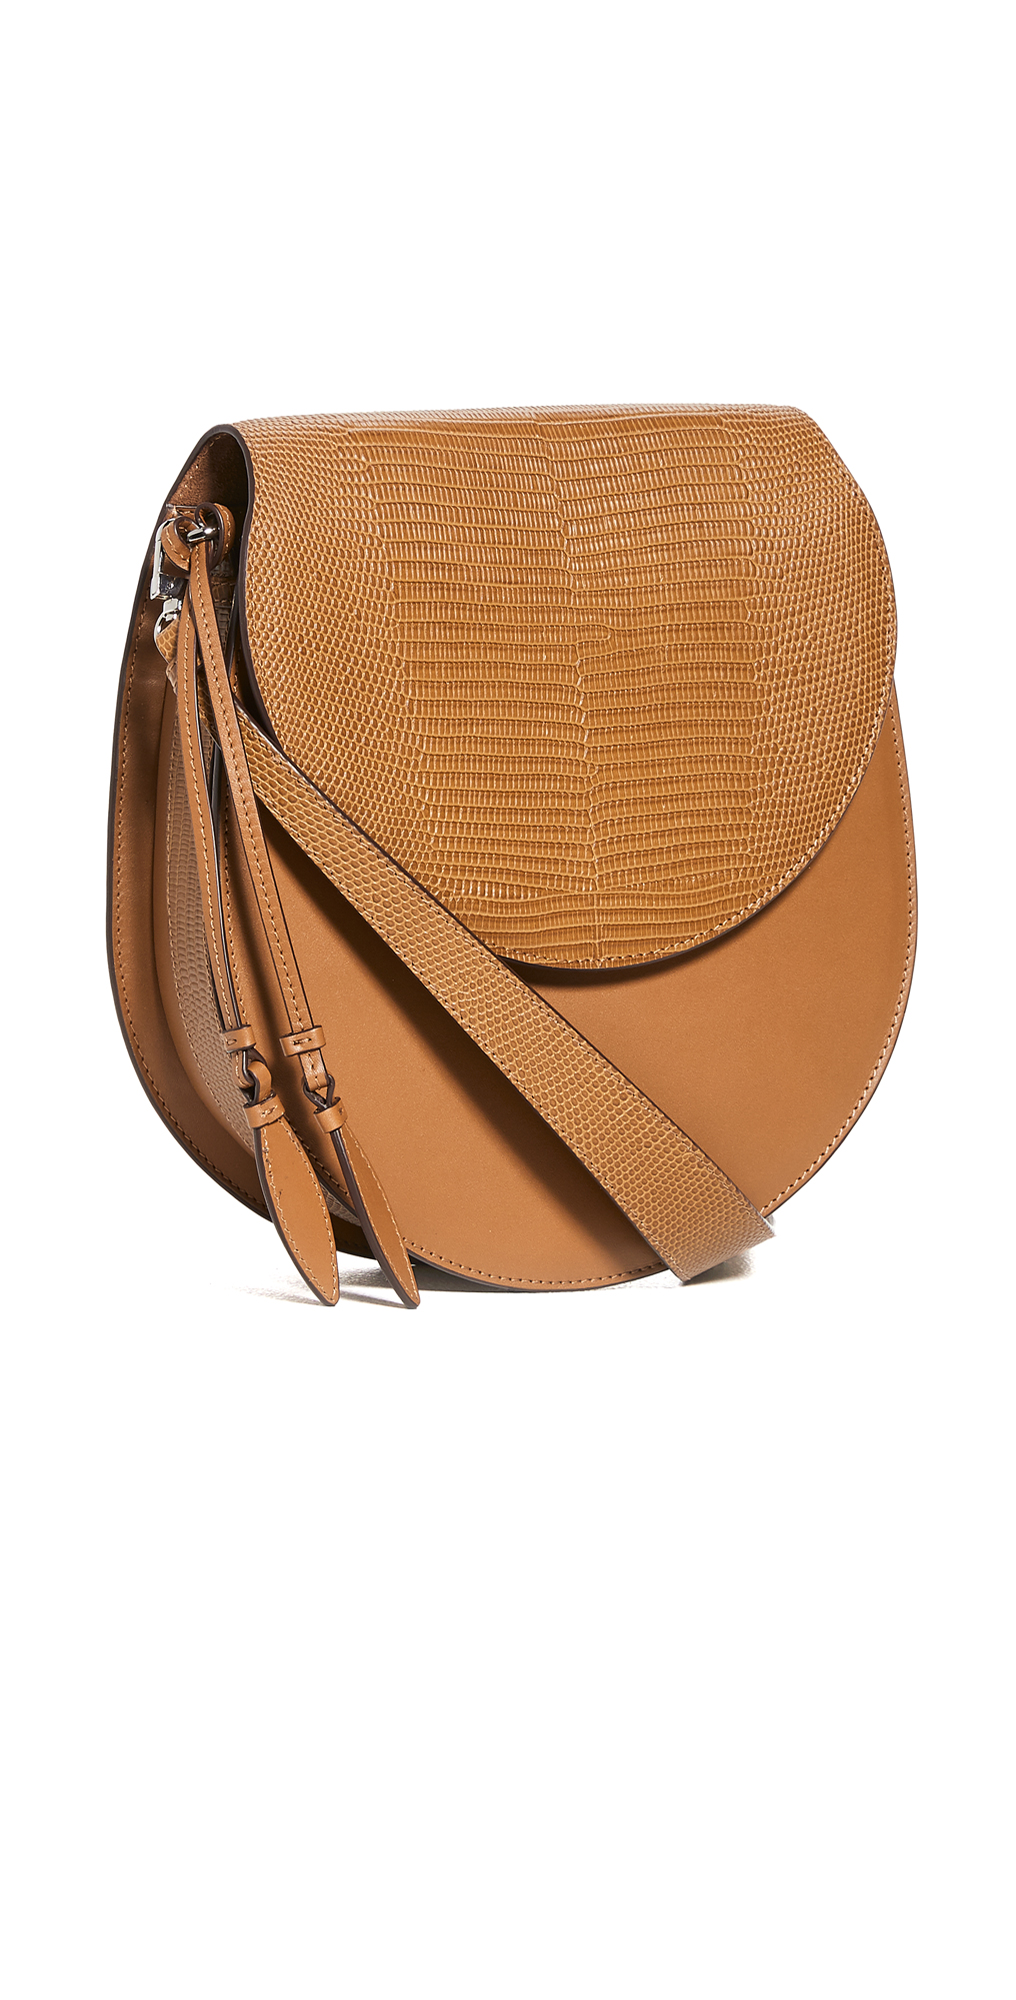 Hunting Season Large Saddle Bag